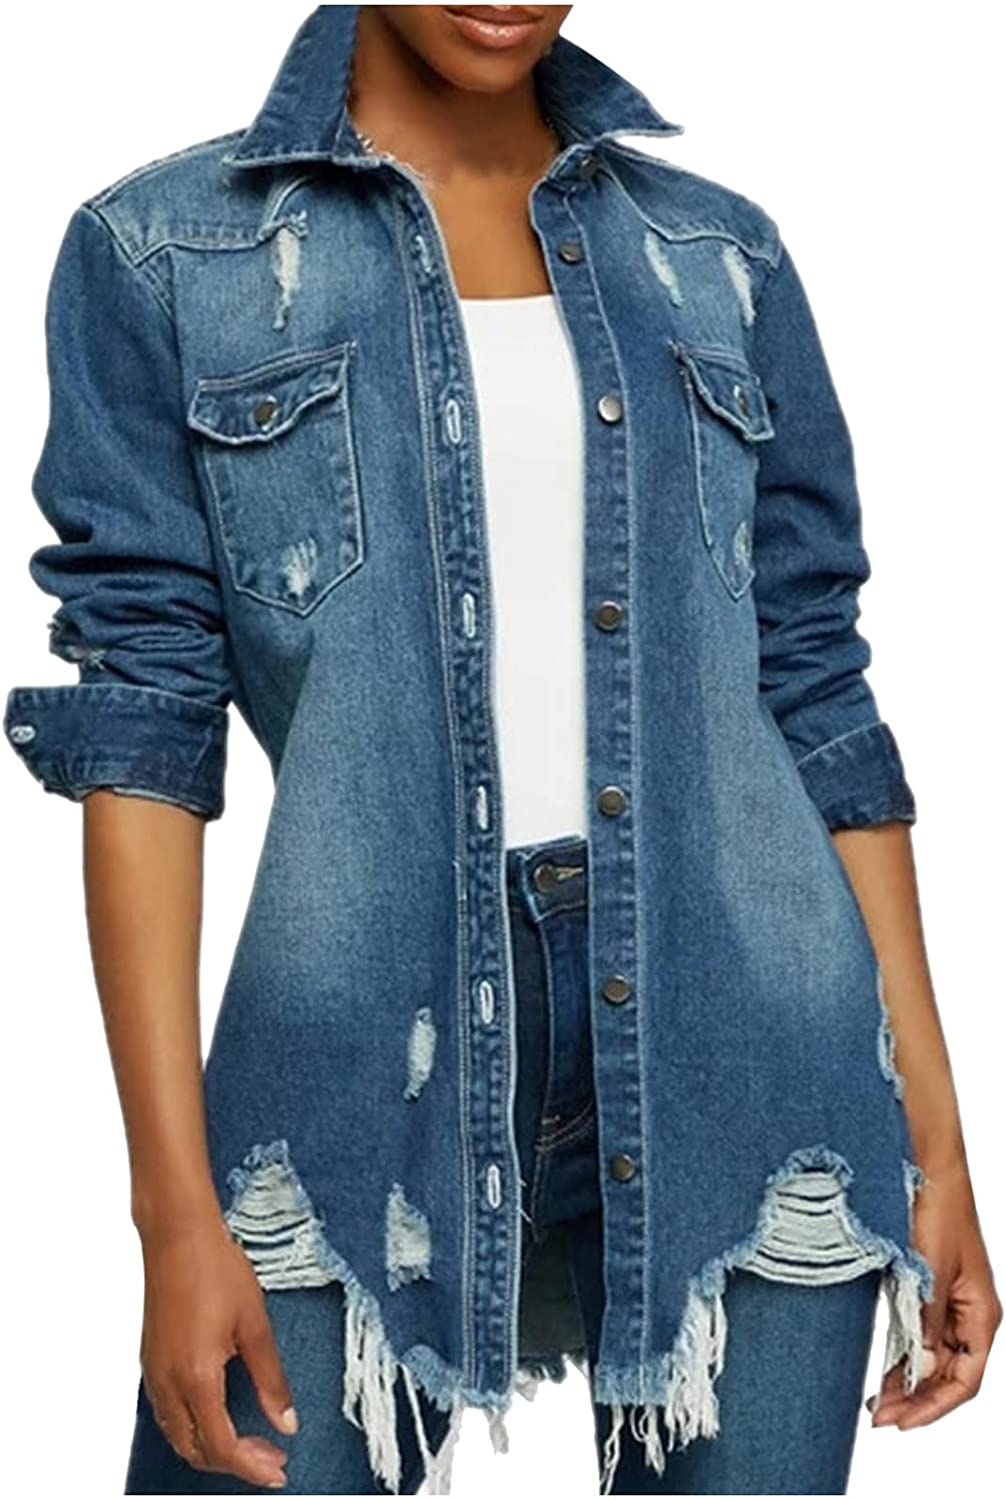 Distressed Denim Jacket Max 77% OFF for Women Ripped S Super Special SALE held Oversized Long Street